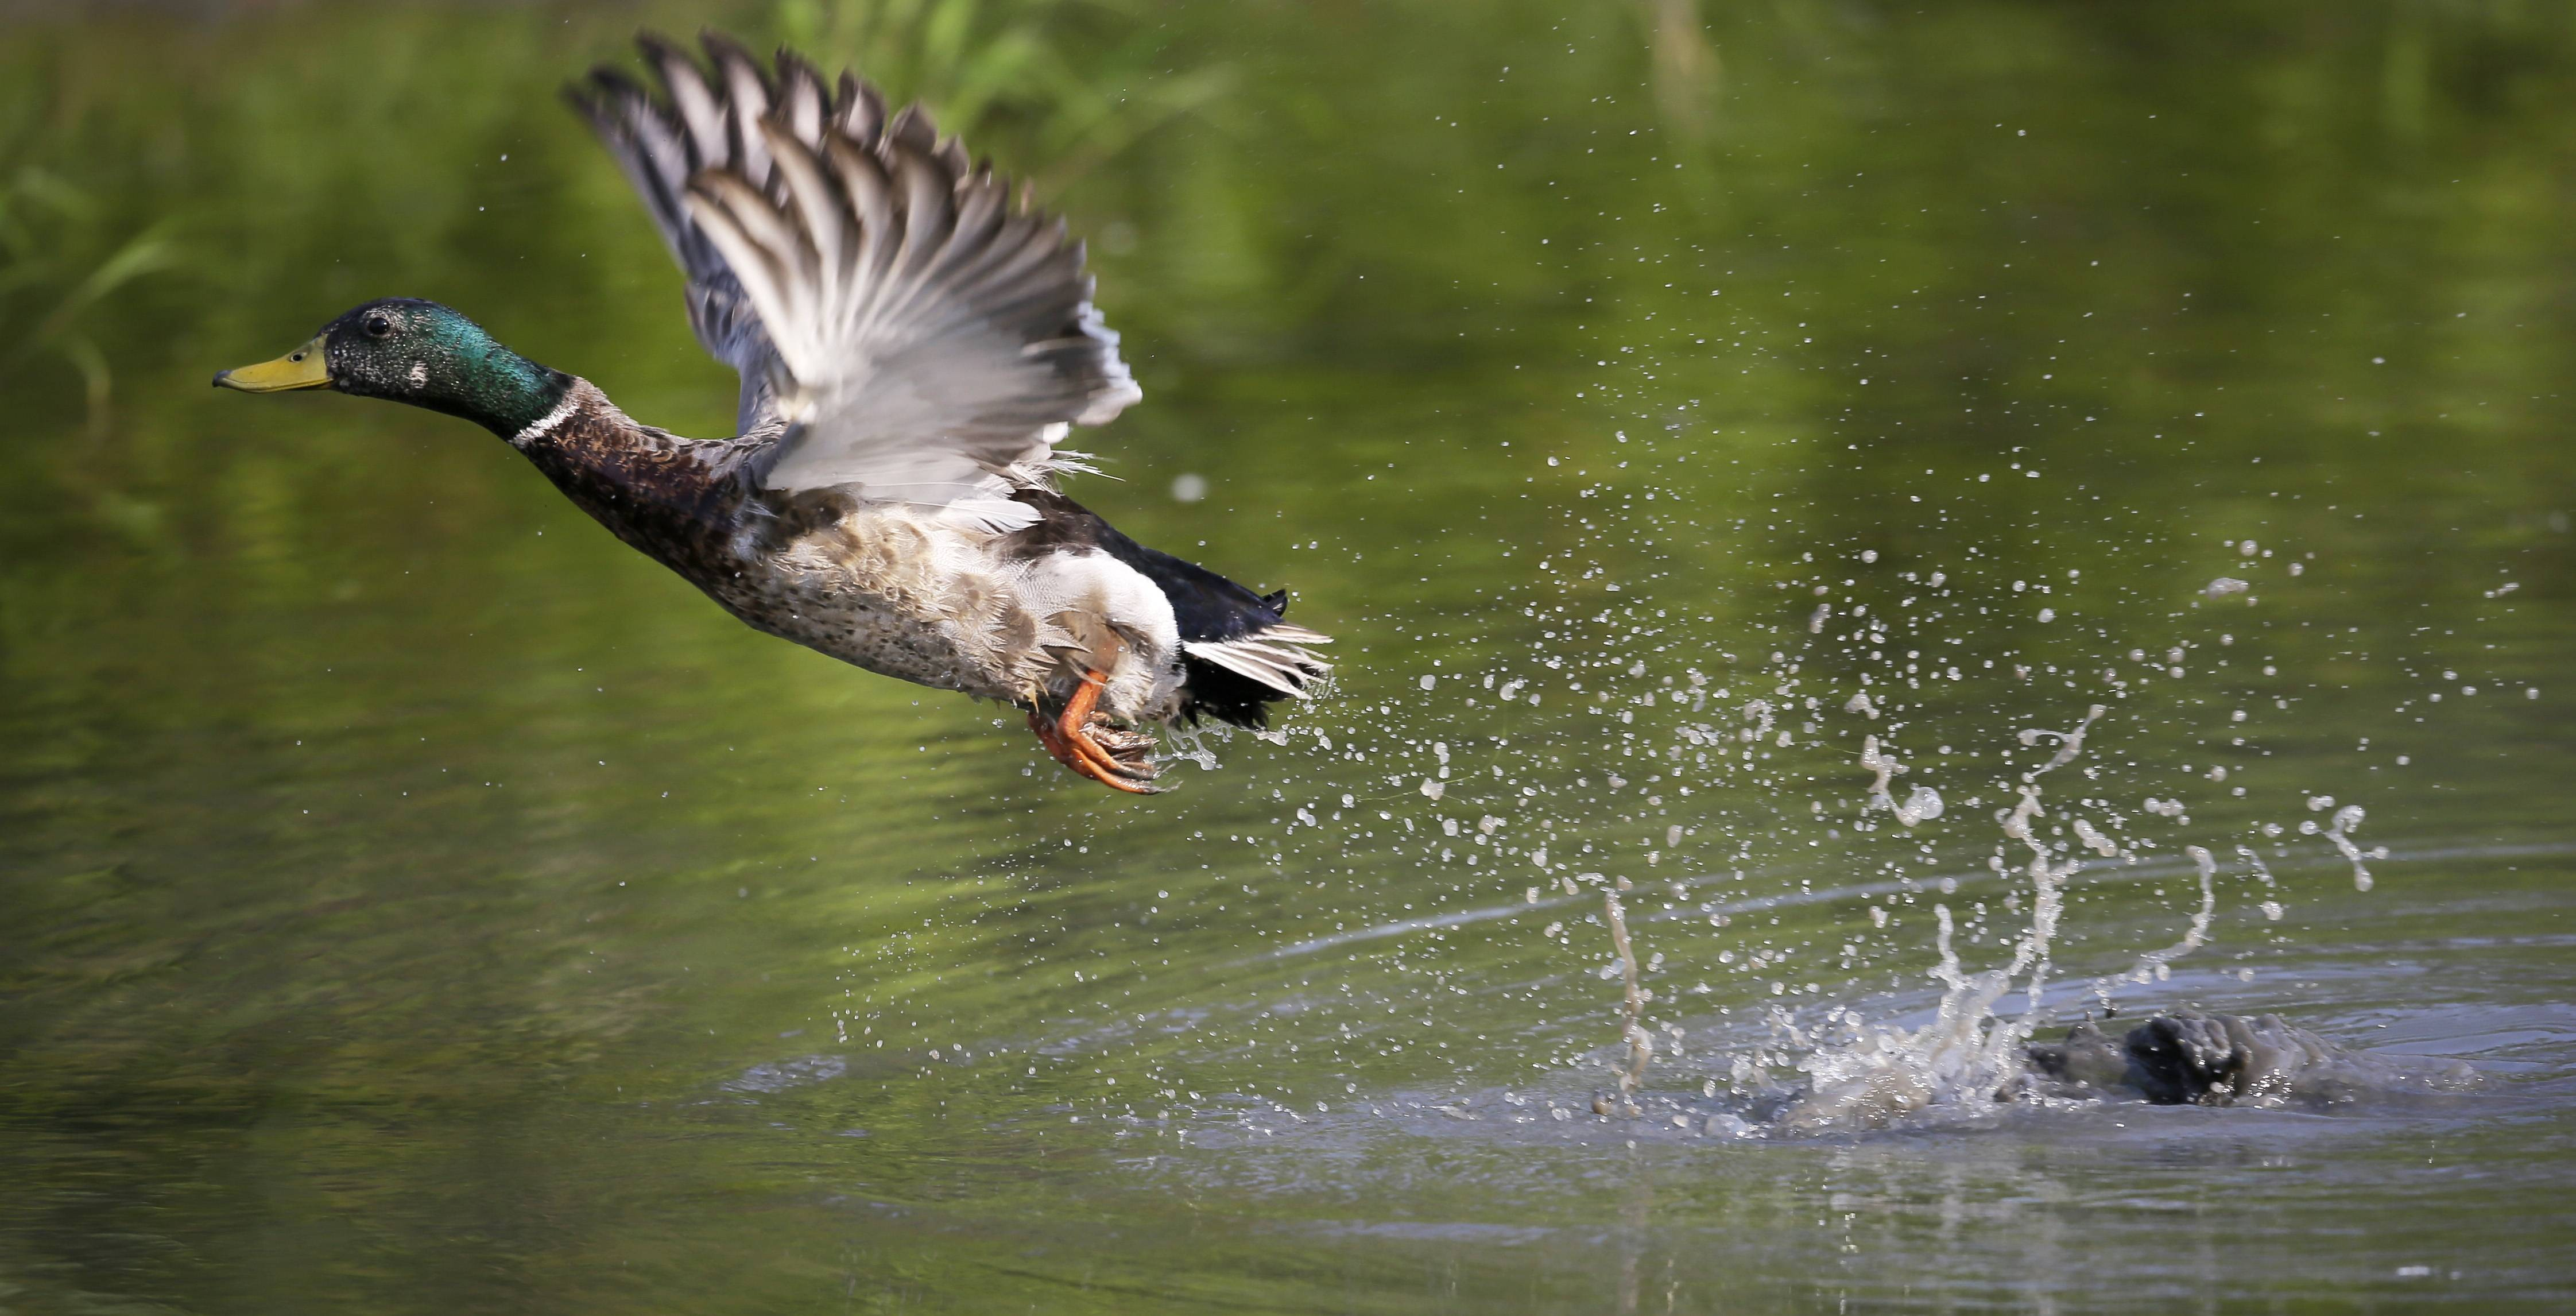 A mallard duck takes flight after feeding in a pond at Water Works Park in Des Moines, Iowa.